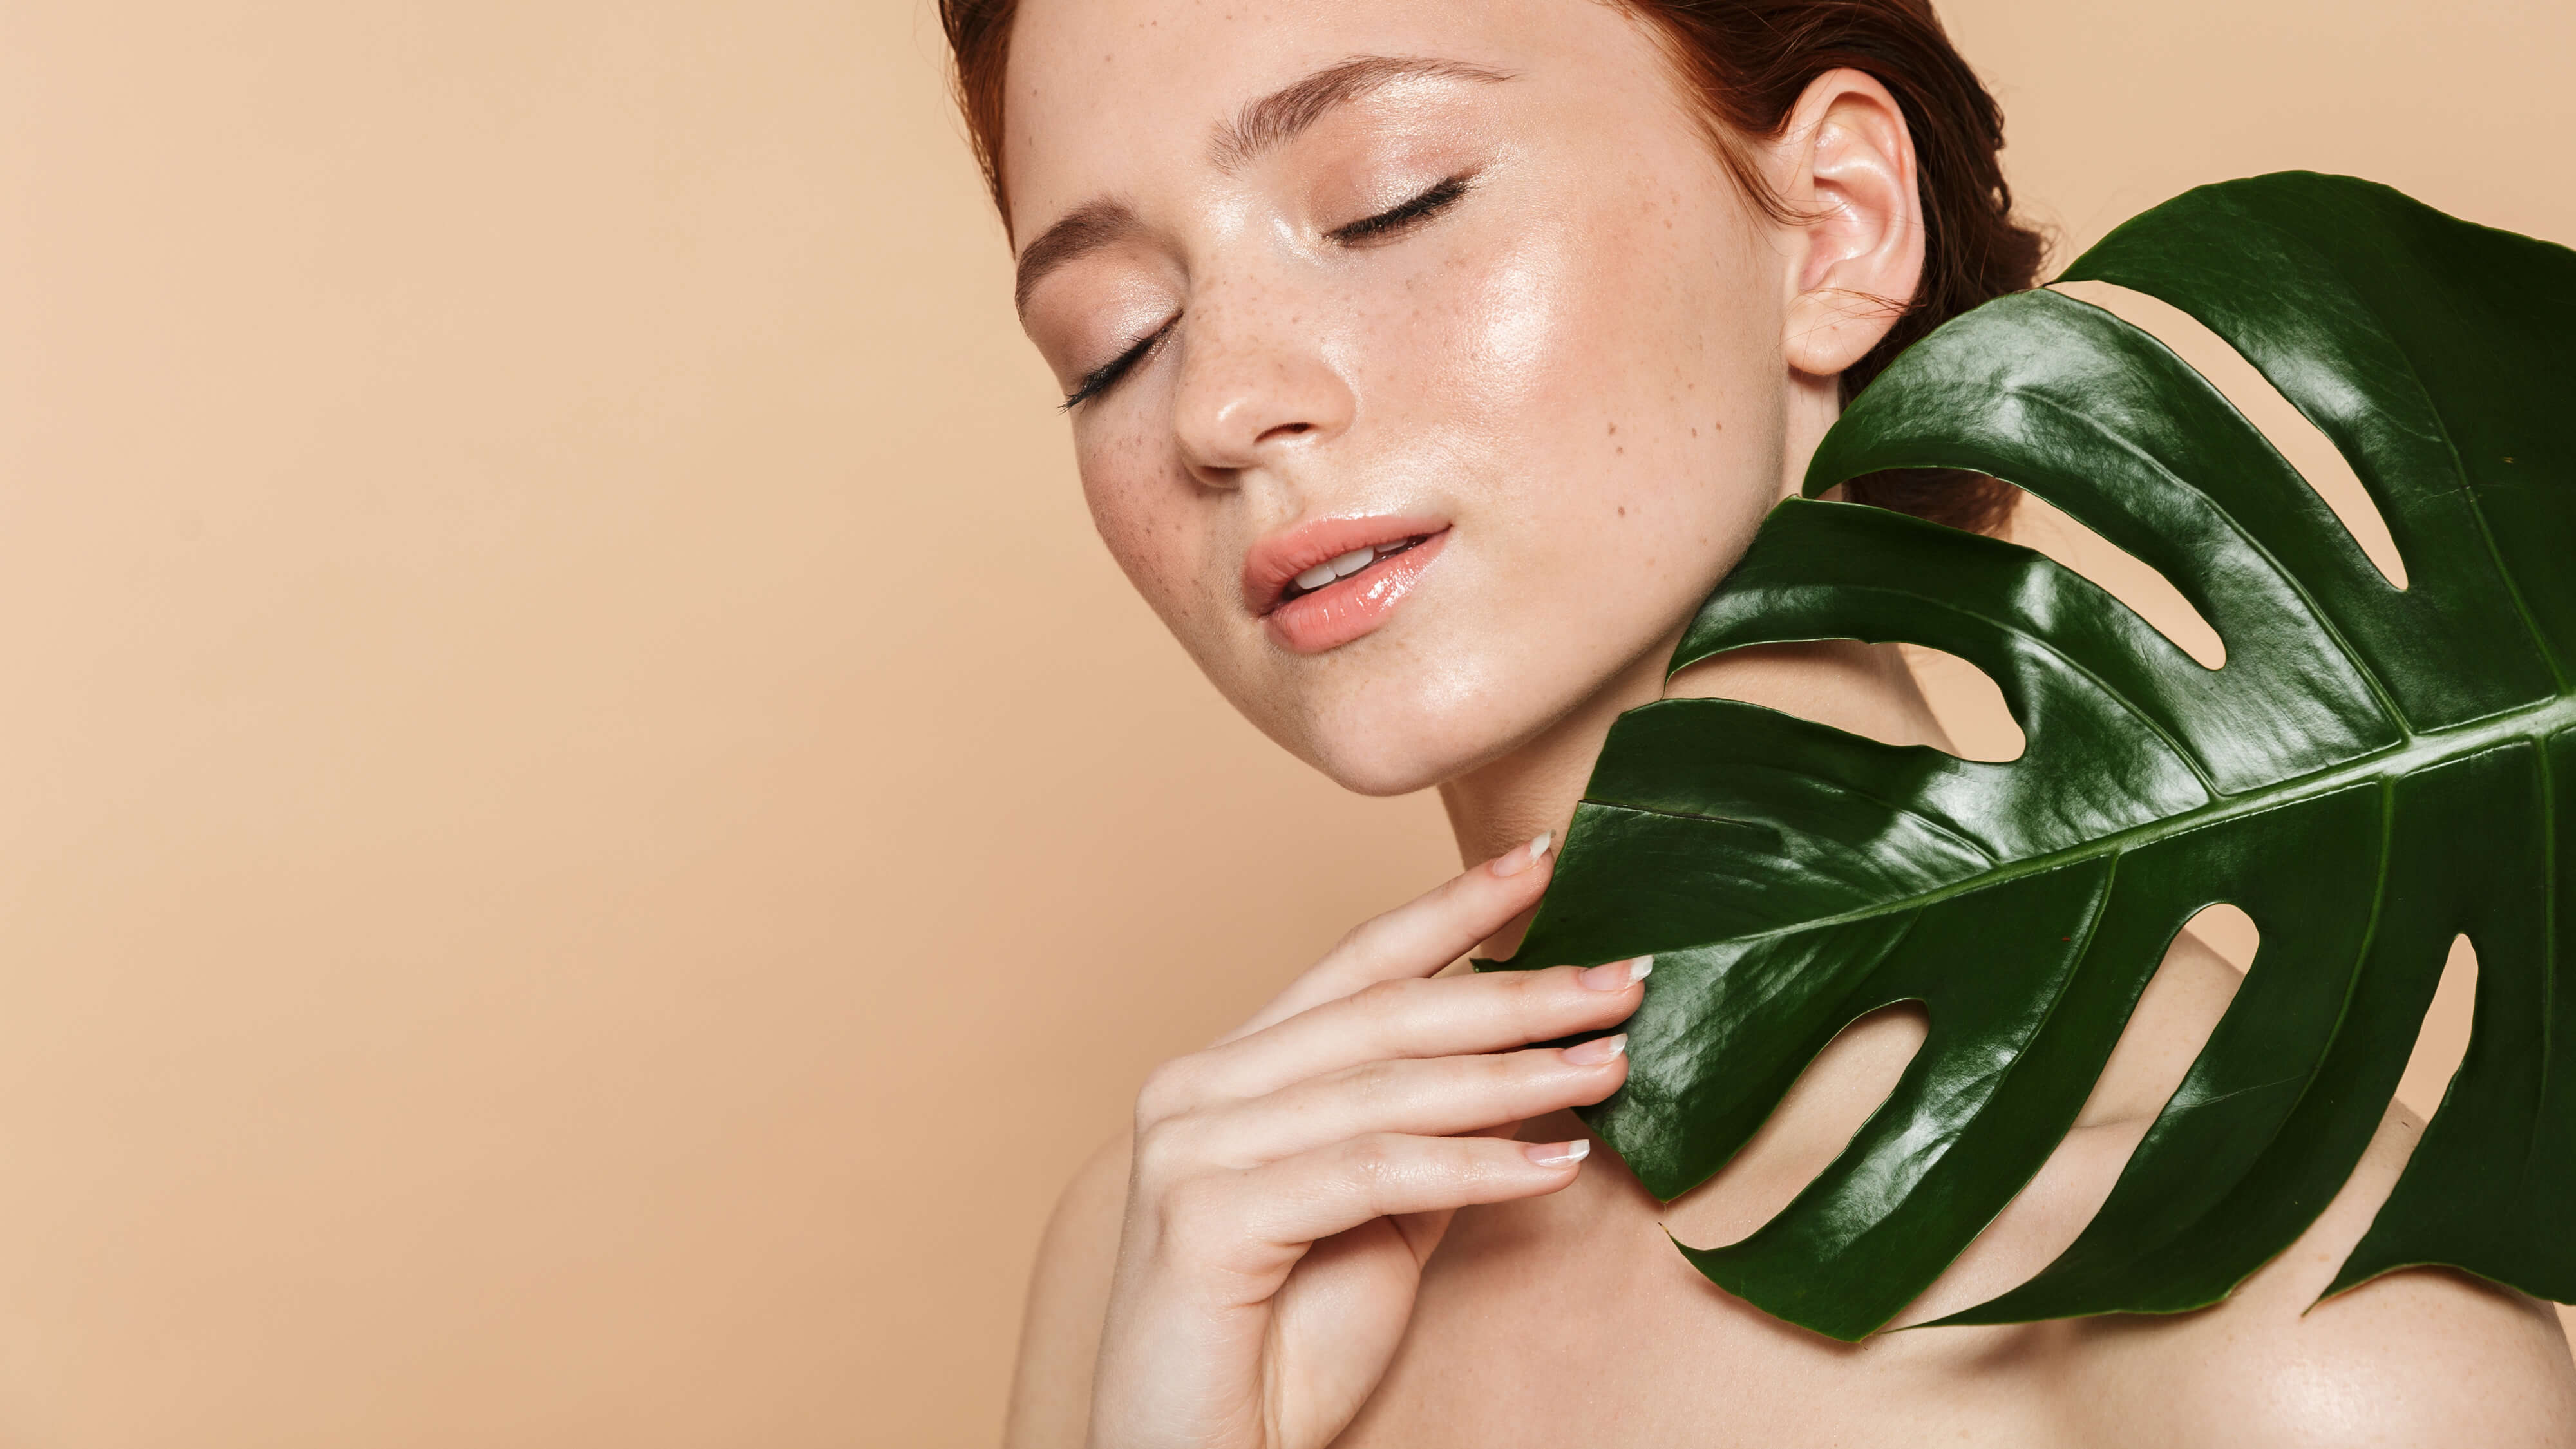 Beautiful red headed woman with eyes closed holding a big green leaf with the tips of her fingers